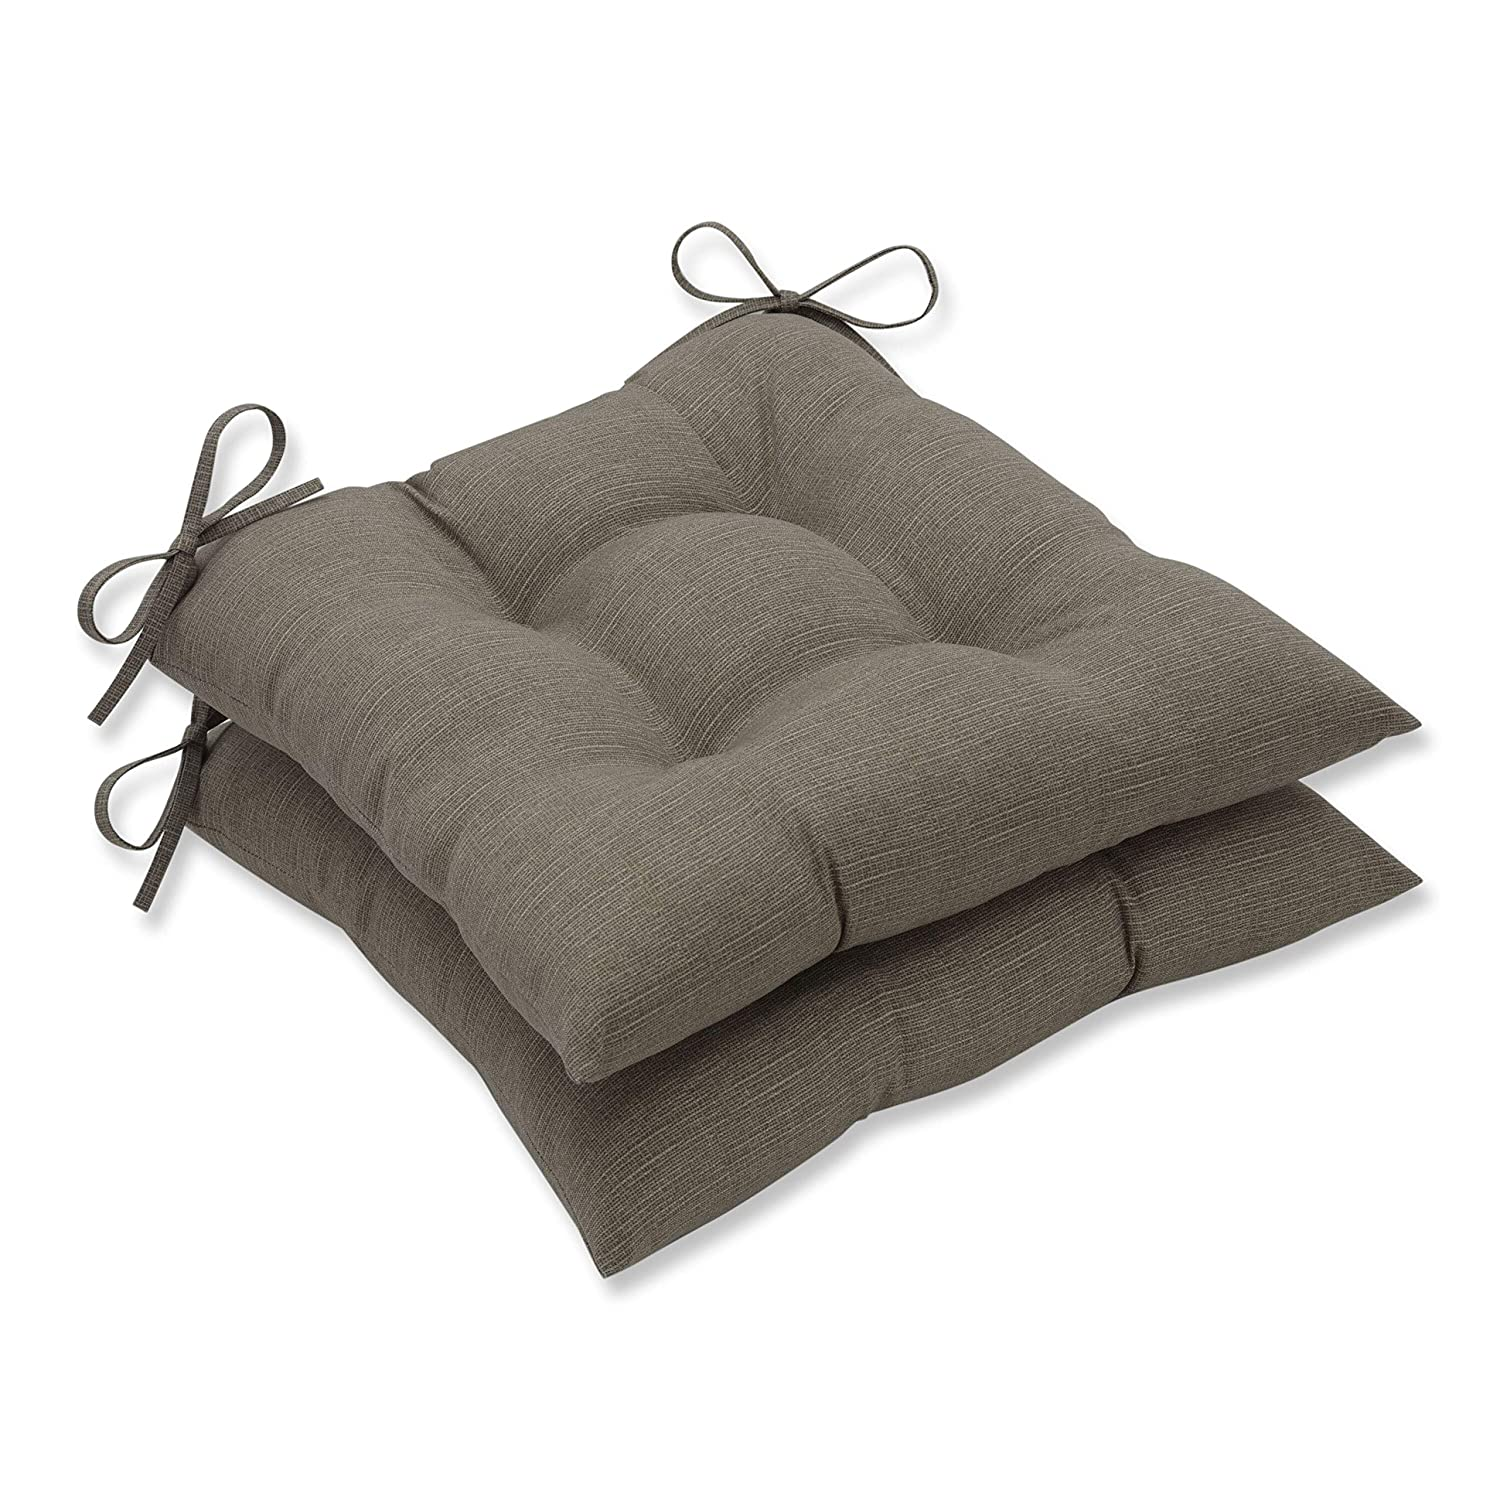 Pillow Perfect Indoor Outdoor Taupe Textured Solid Tufted Seat Cushion, 2-Pack